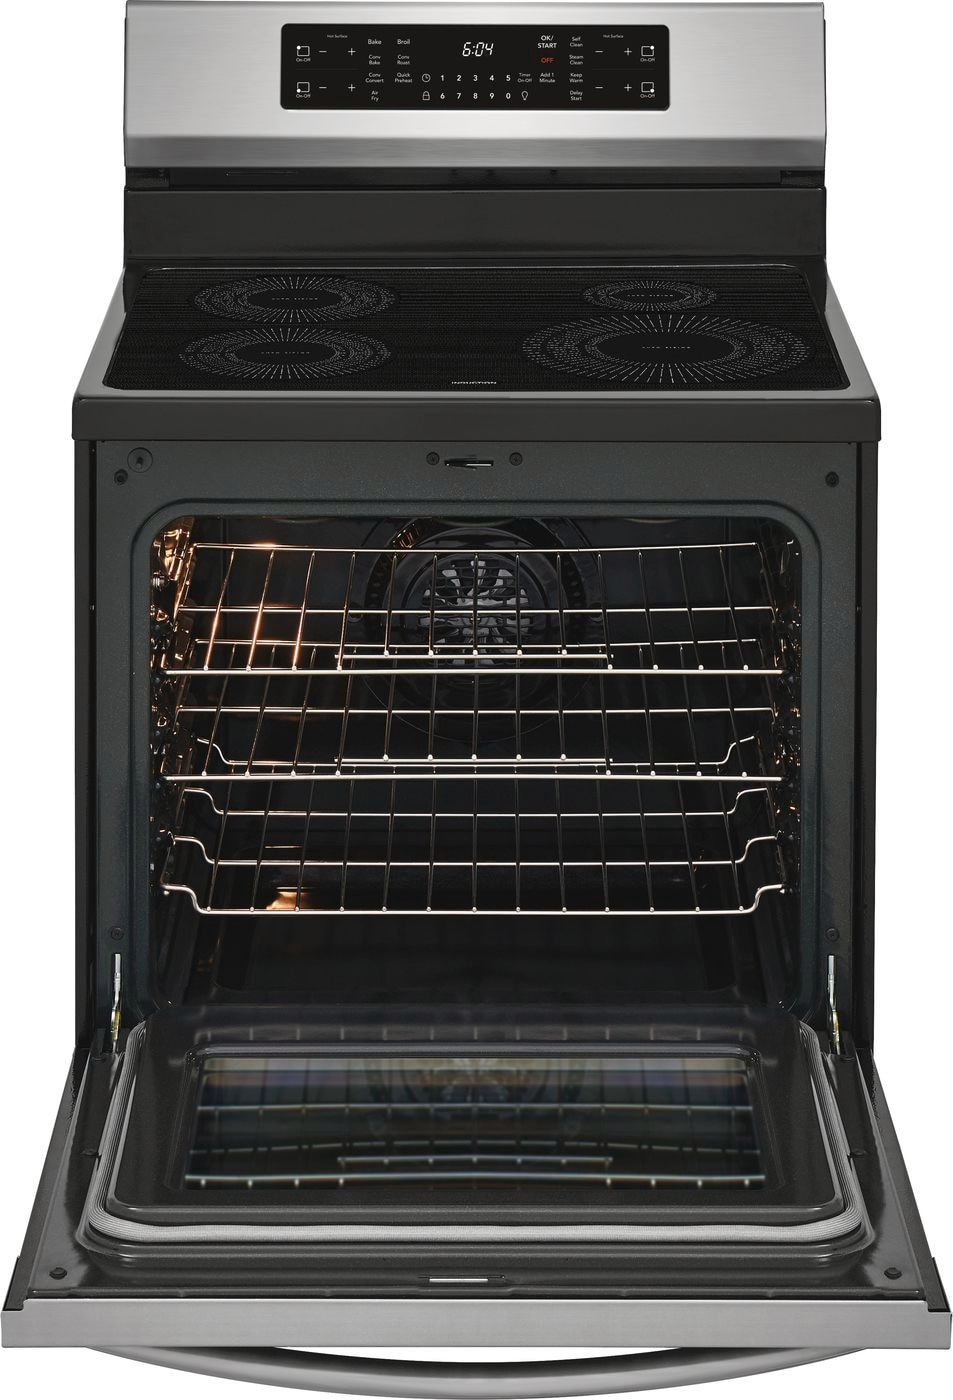 "Model: GCRI3058AF | Frigidaire Gallery 30"" Freestanding Induction Range with Air Fry"